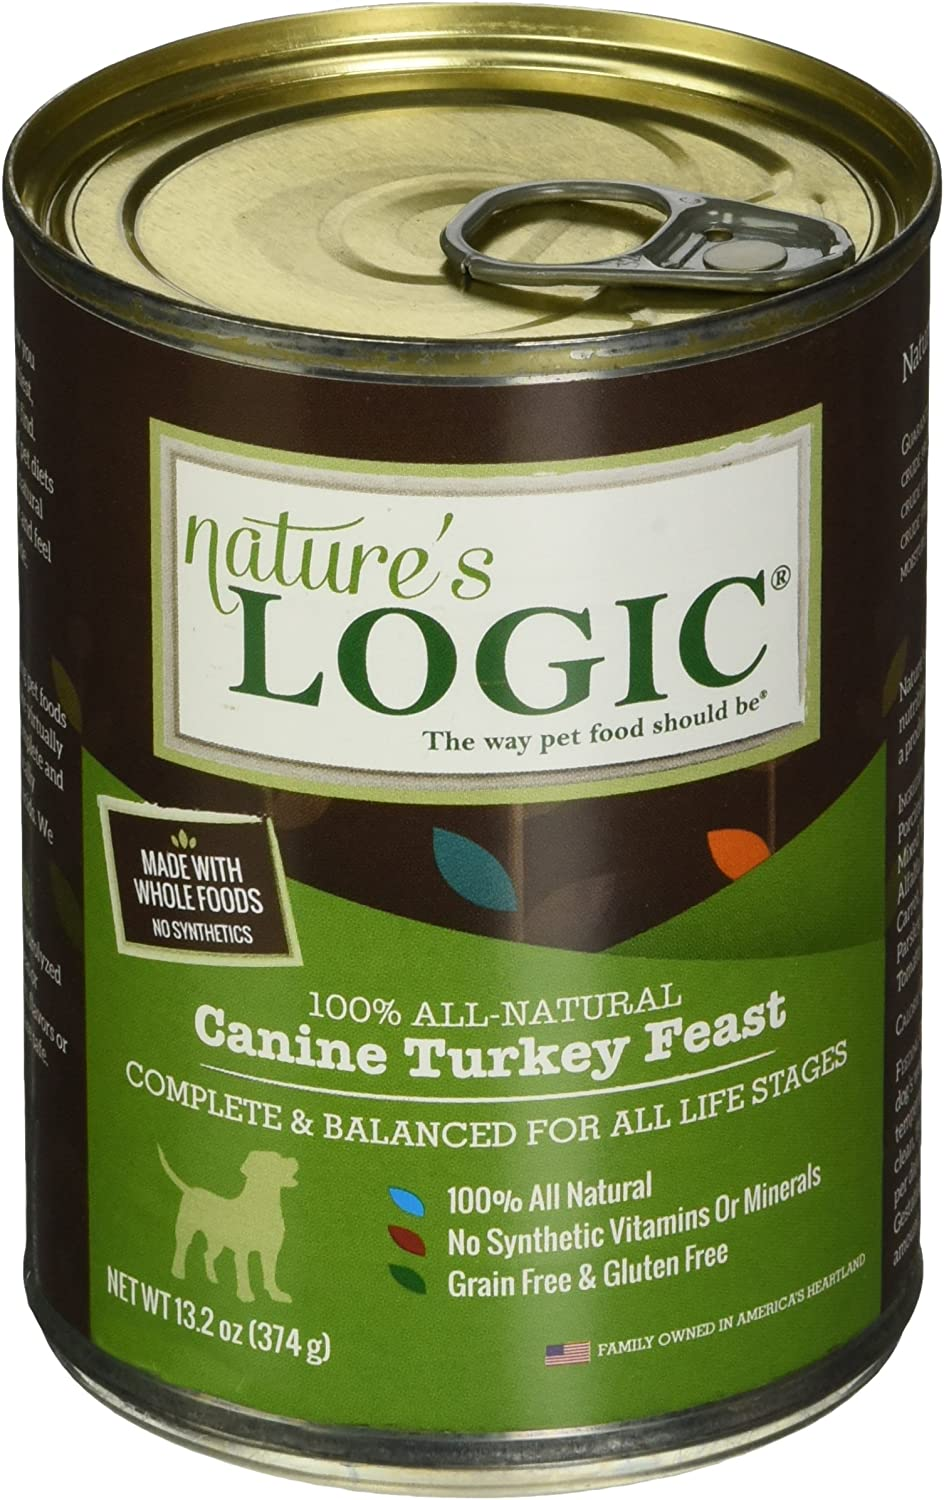 Nature'S Logic Turkey Canned Dog Food (Case Of 12), 12/13.2 Oz/One Size